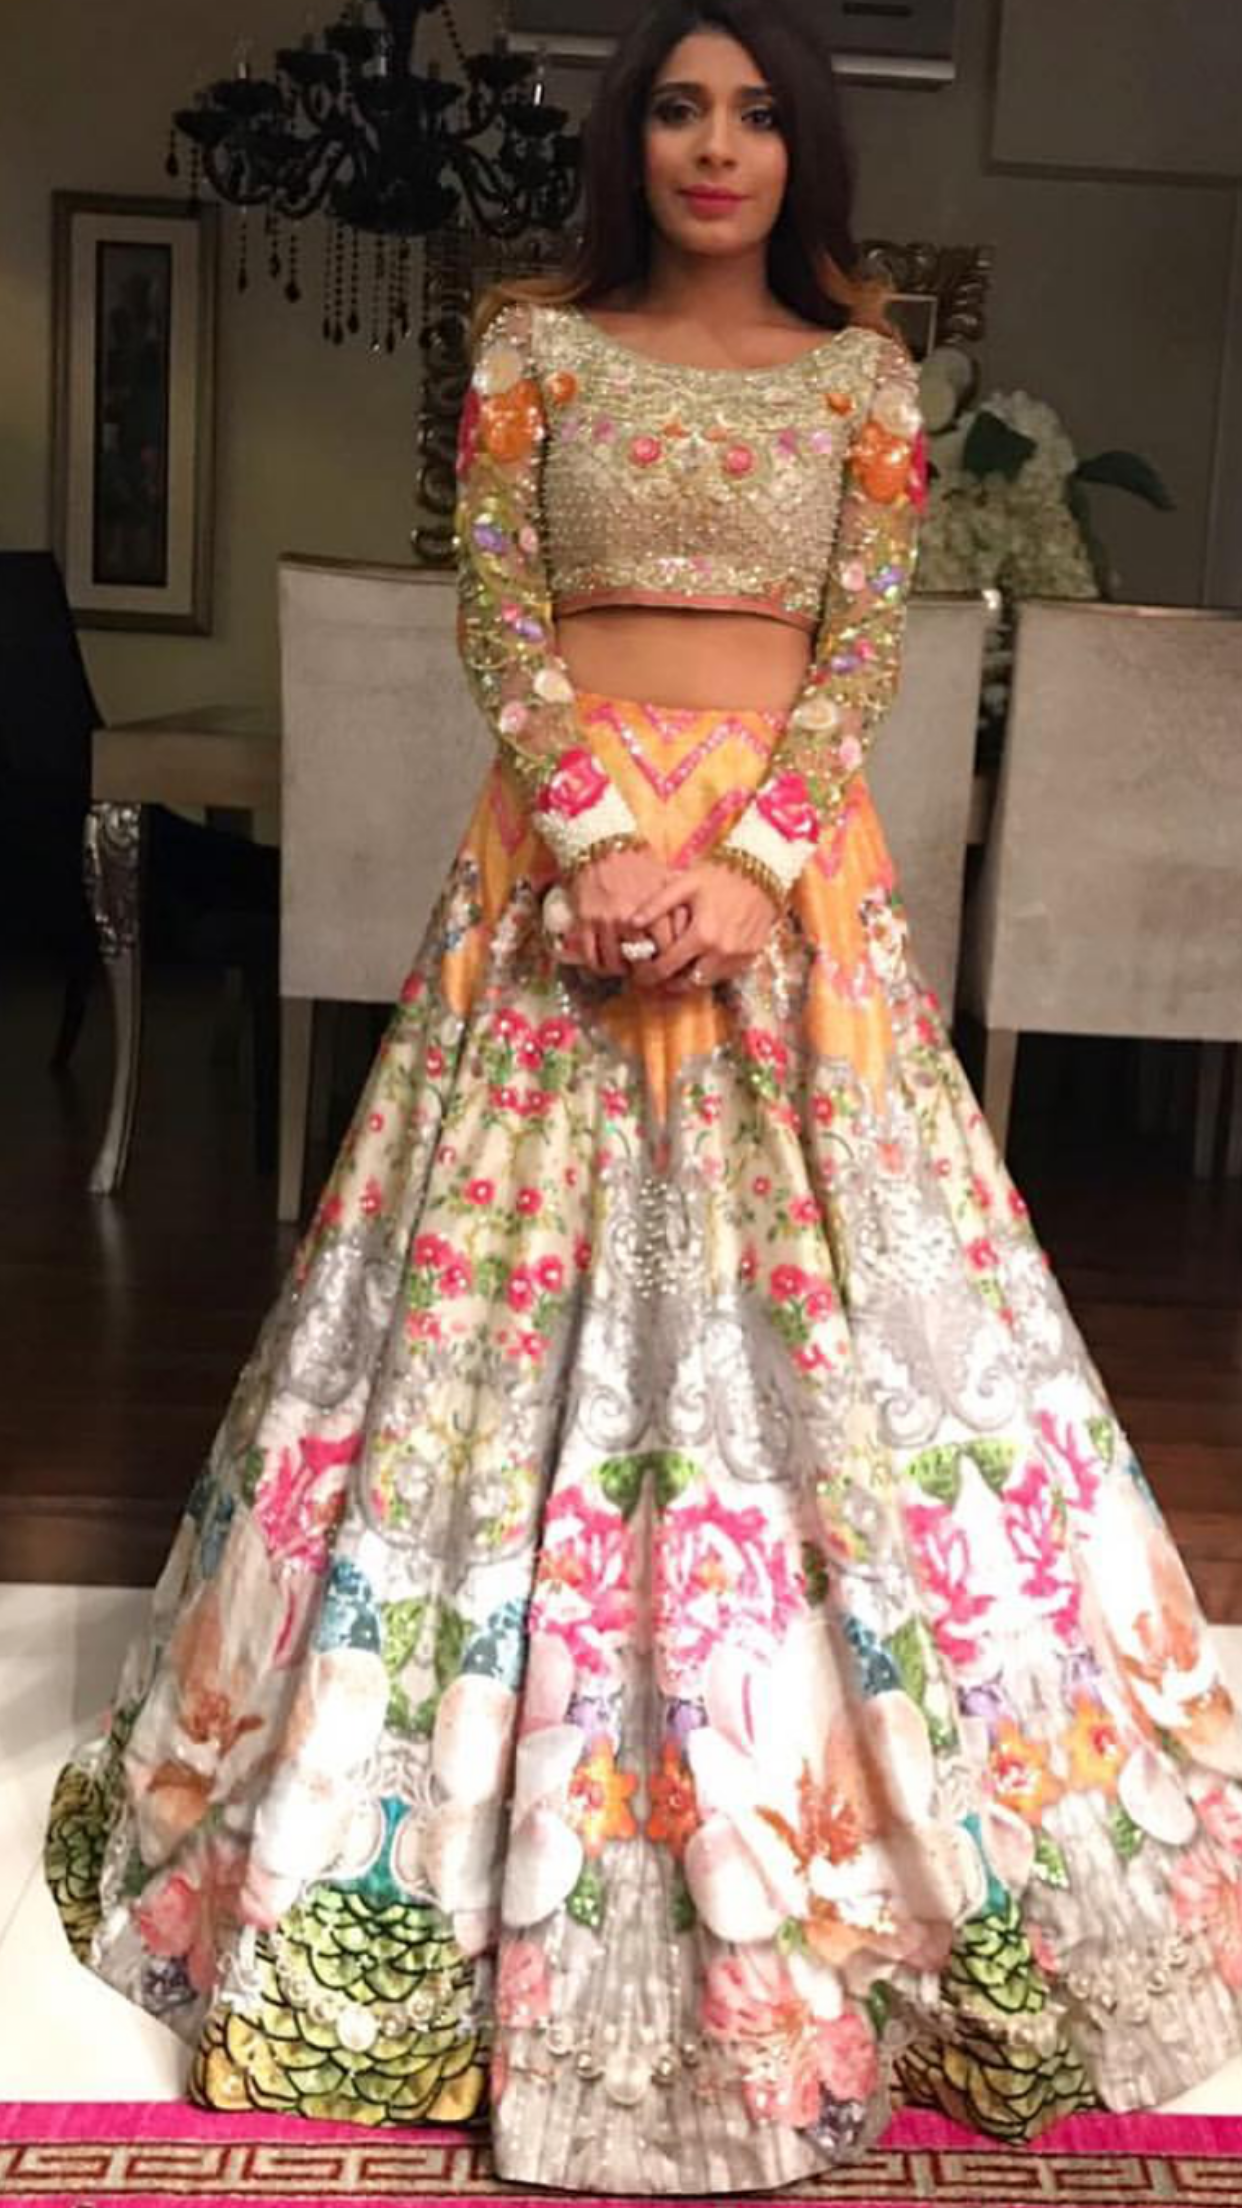 c64c9adec1 Light Lehengas - Floral Offbeat White and Gold Lehenga | WedMeGood |  Embroidered and Embellished Blouse with Orange and White Floral Print  #wedmegood ...